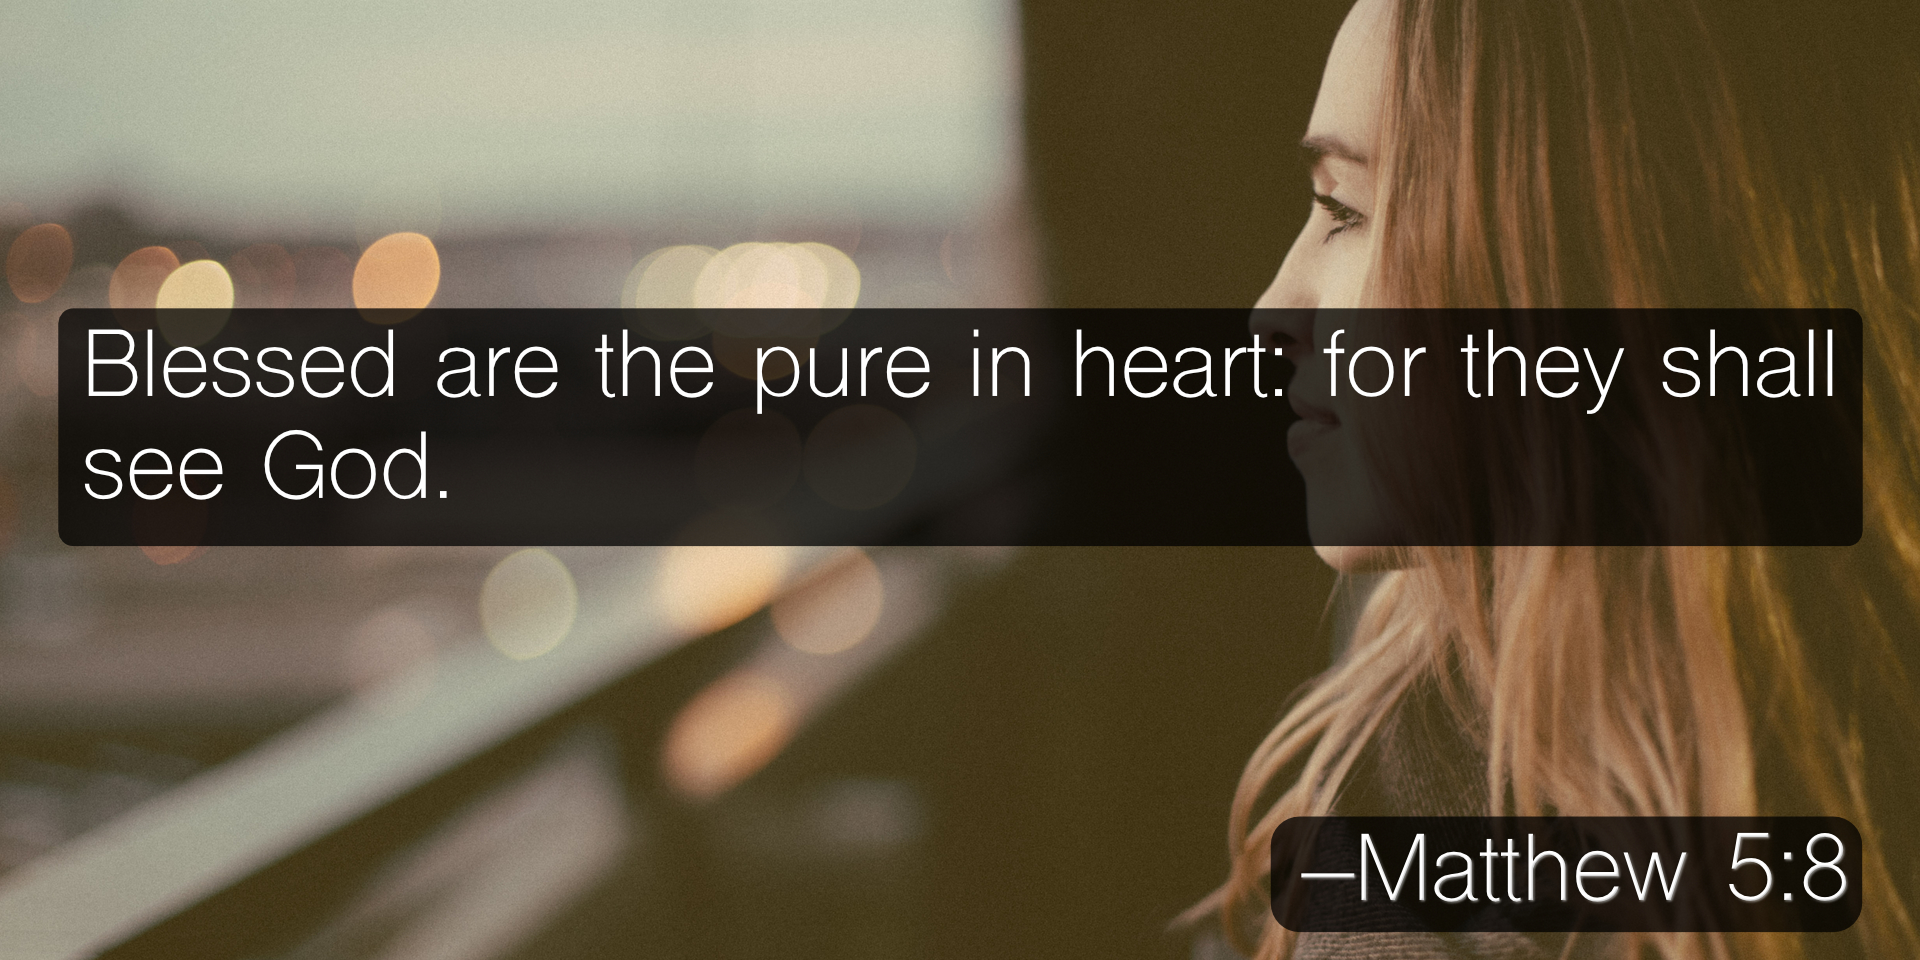 Blessed are the pure in heart: for they shall see God. –Matthew 5:8